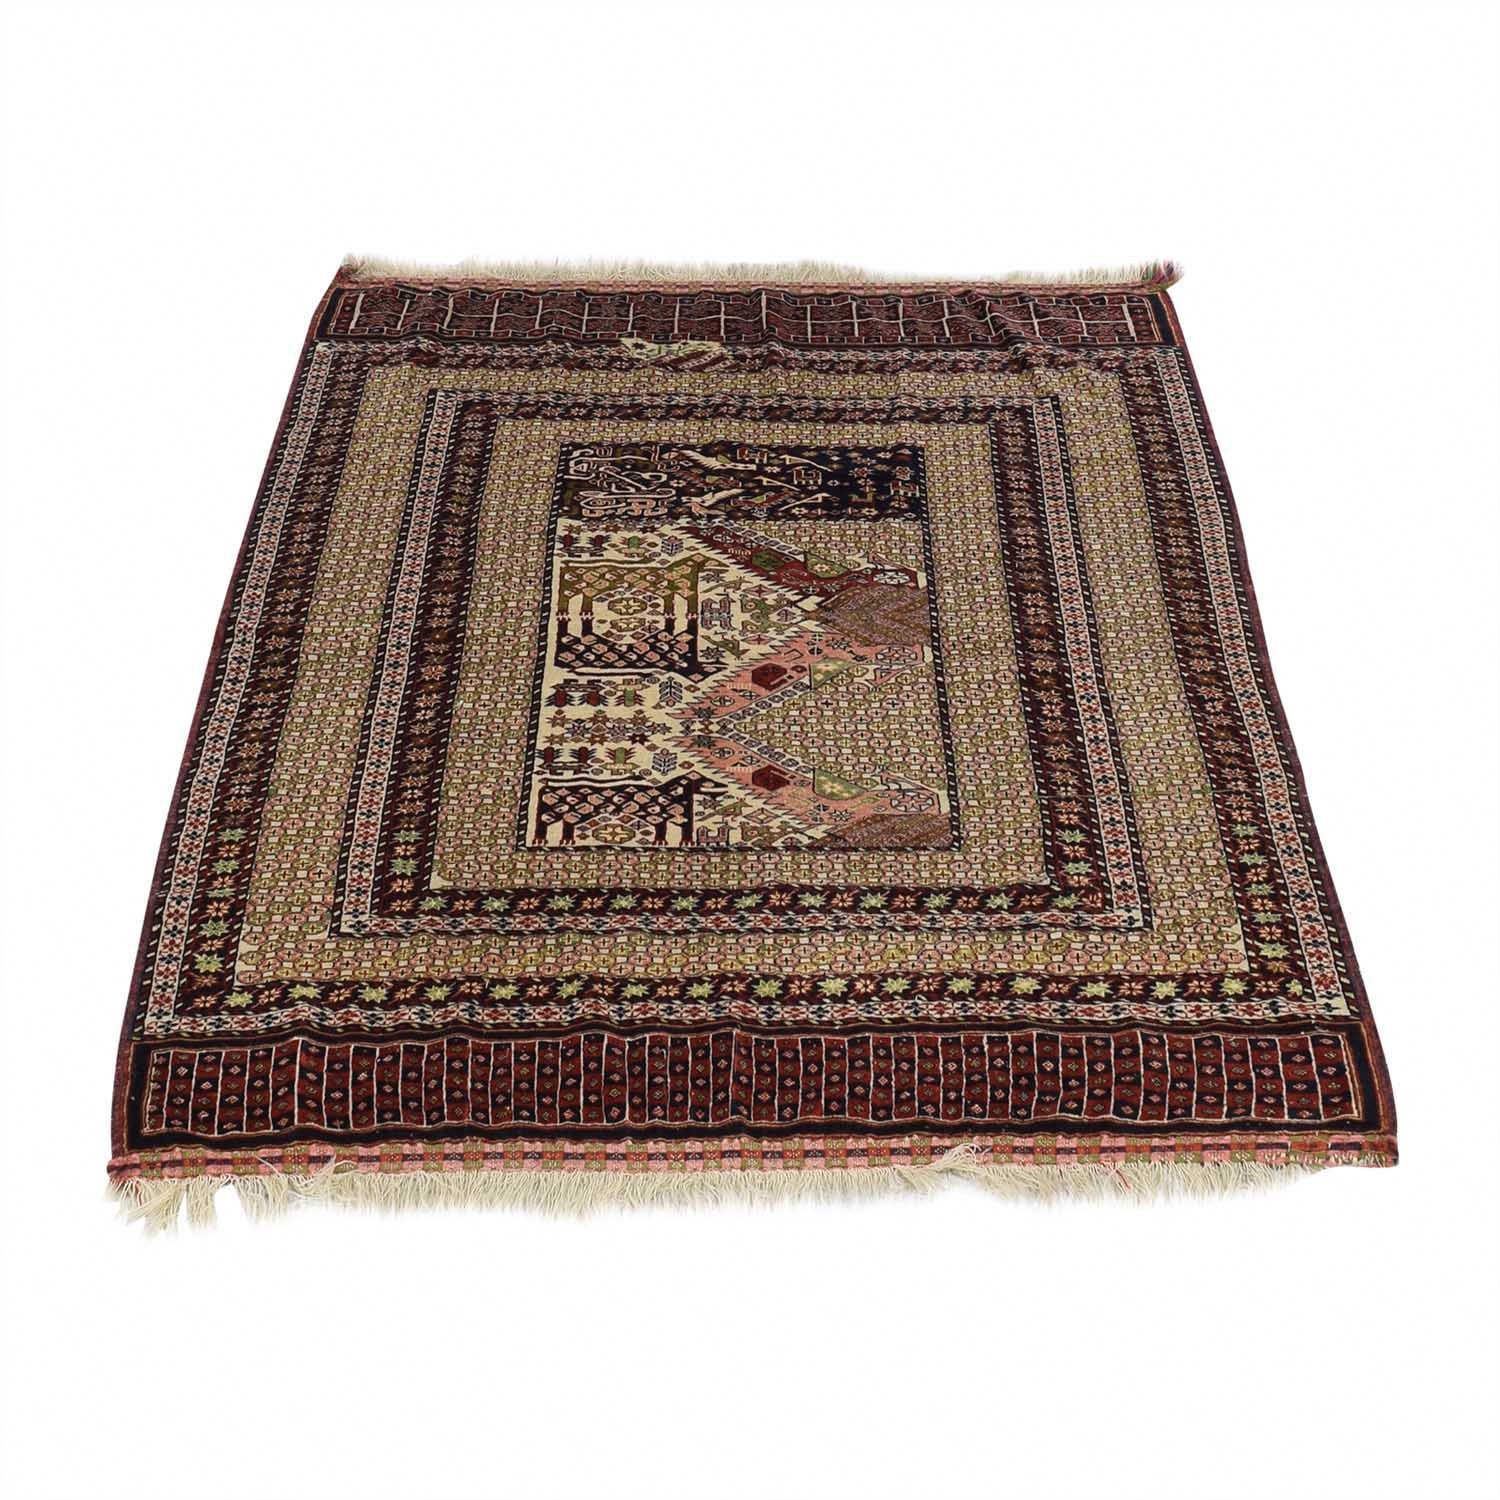 buy  Turkish Rug online